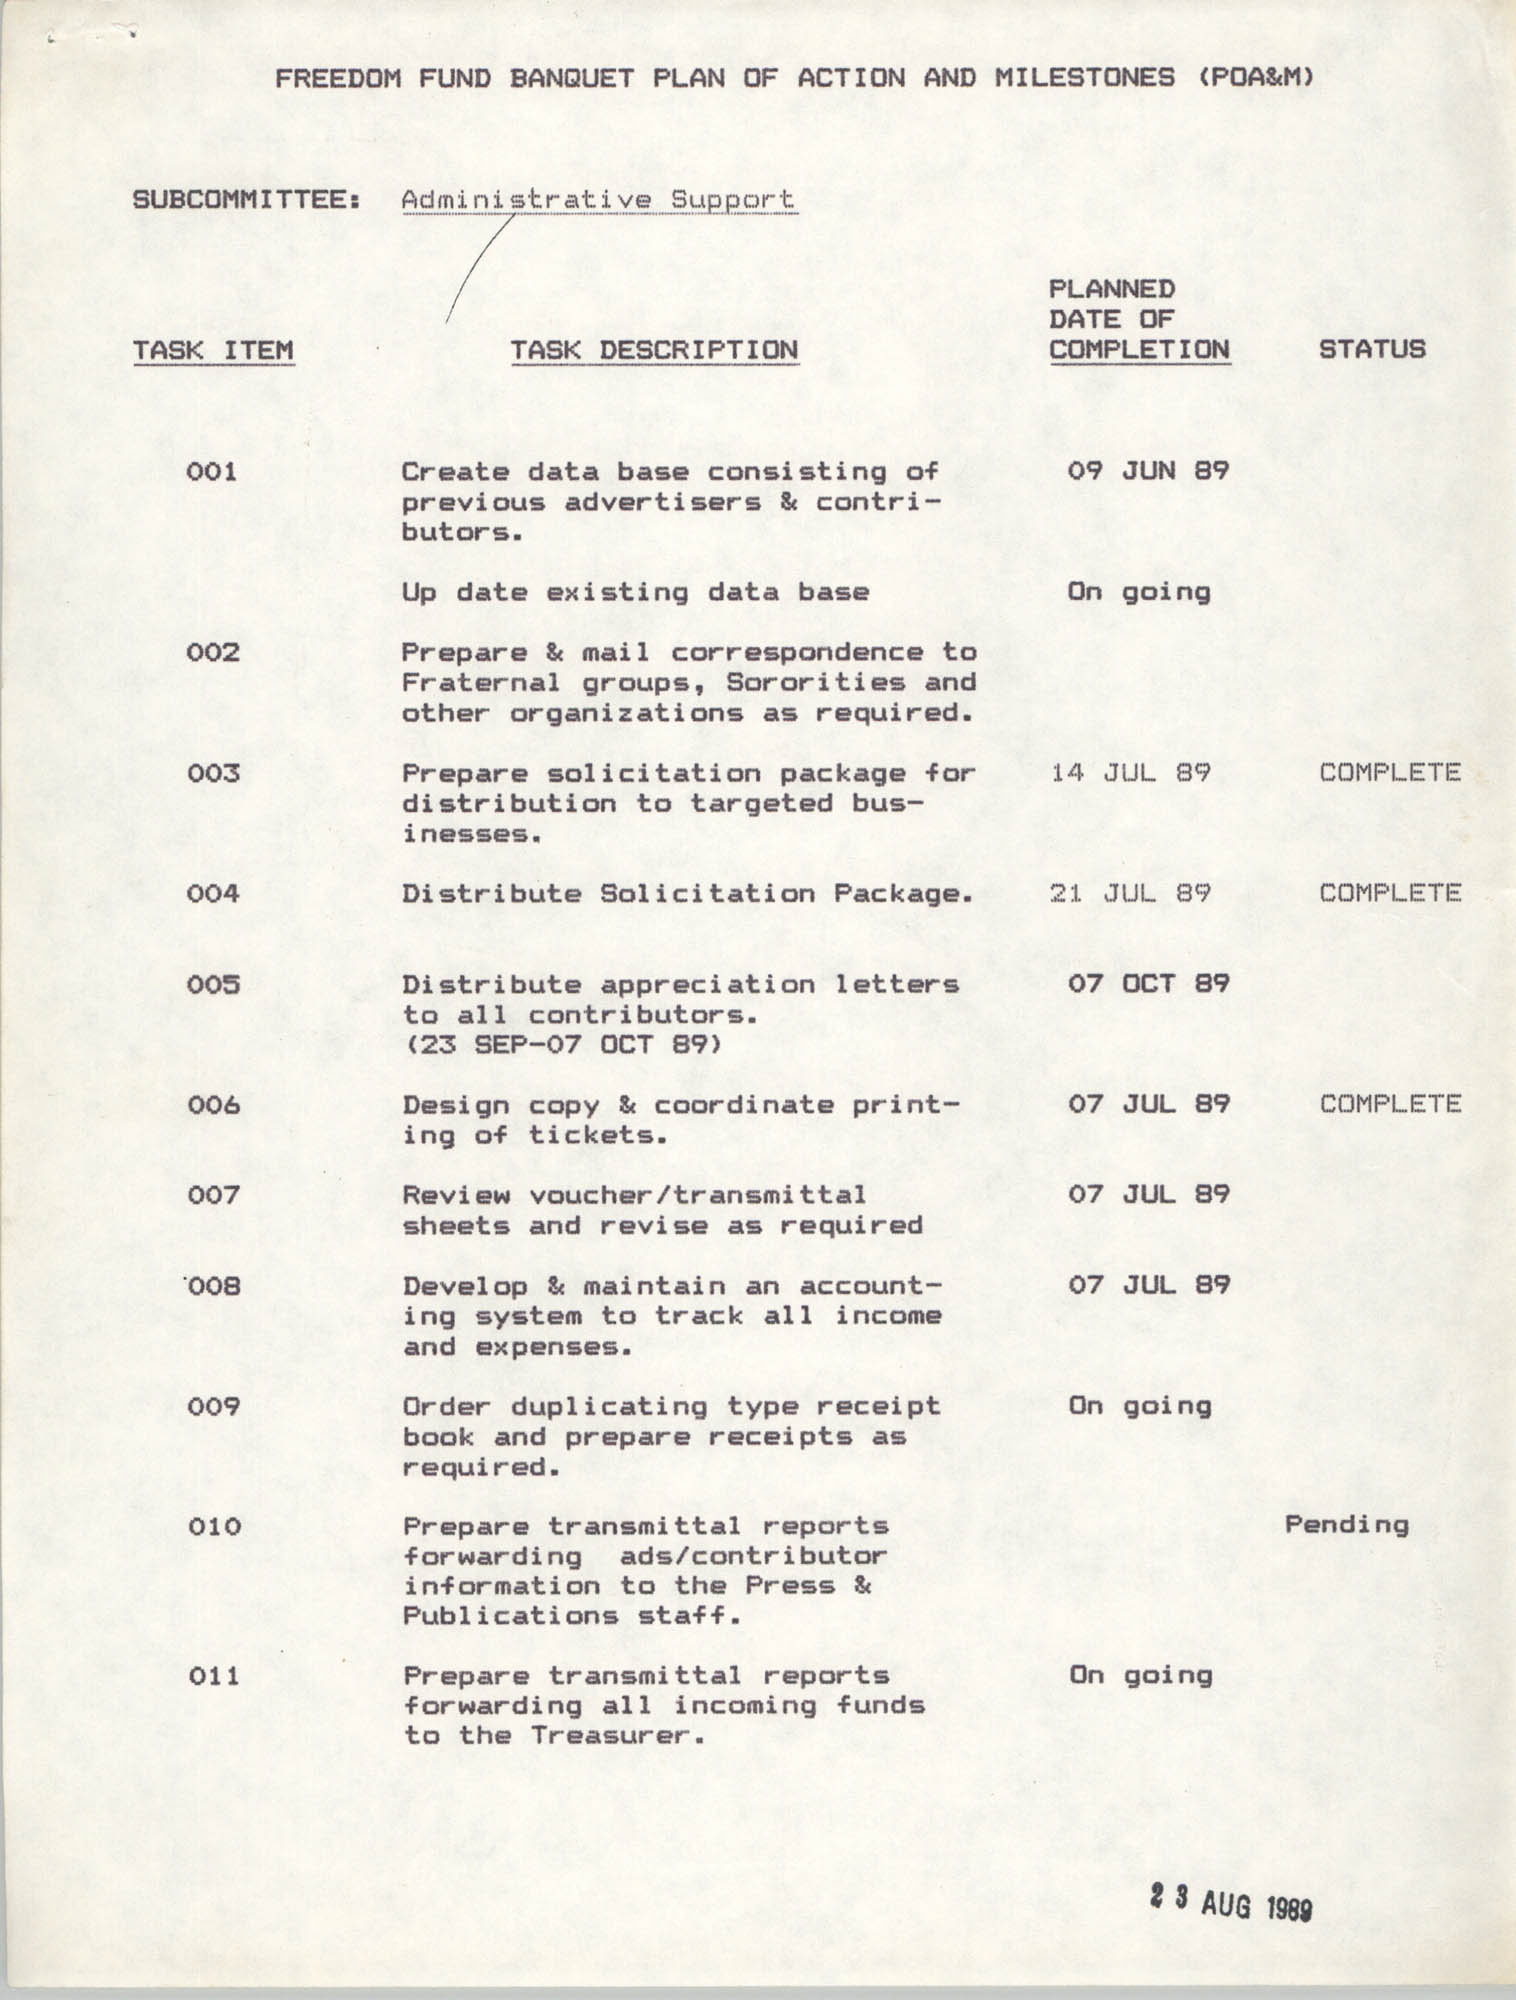 Plan of Actions and Milestones, Administrative Support Subcommittee, Freedom Fund Banquet, August 23, 1989